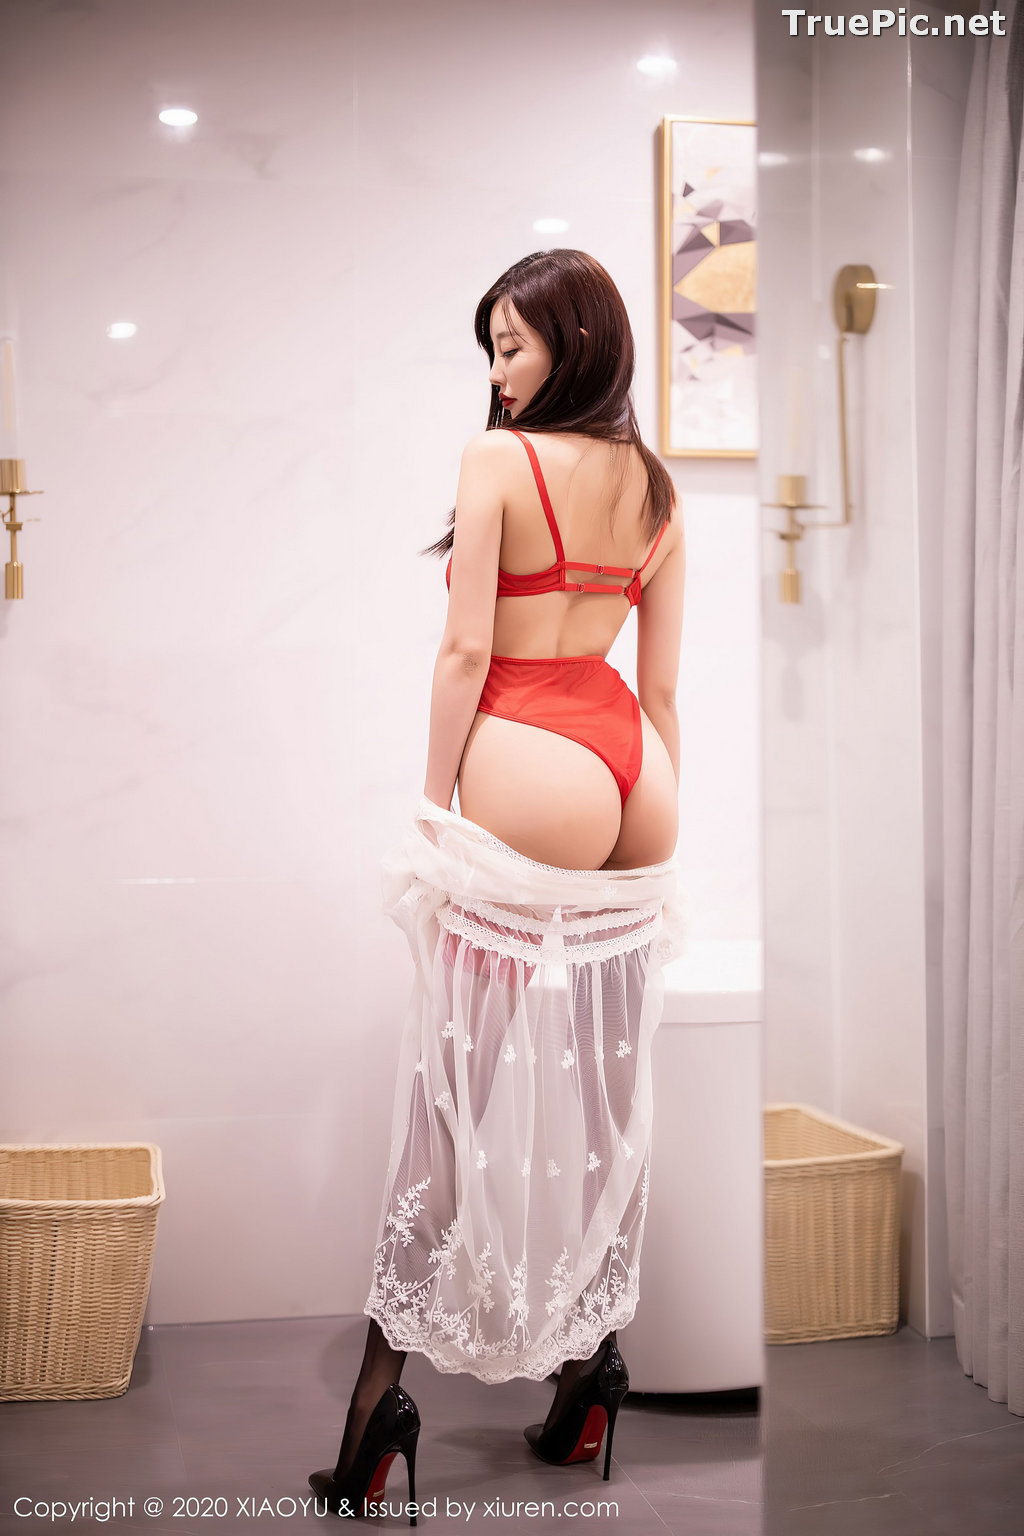 Image XiaoYu Vol.413 - Chinese Model - Yang Chen Chen (杨晨晨sugar)- Red Crystal-clear Lingerie - TruePic.net - Picture-21